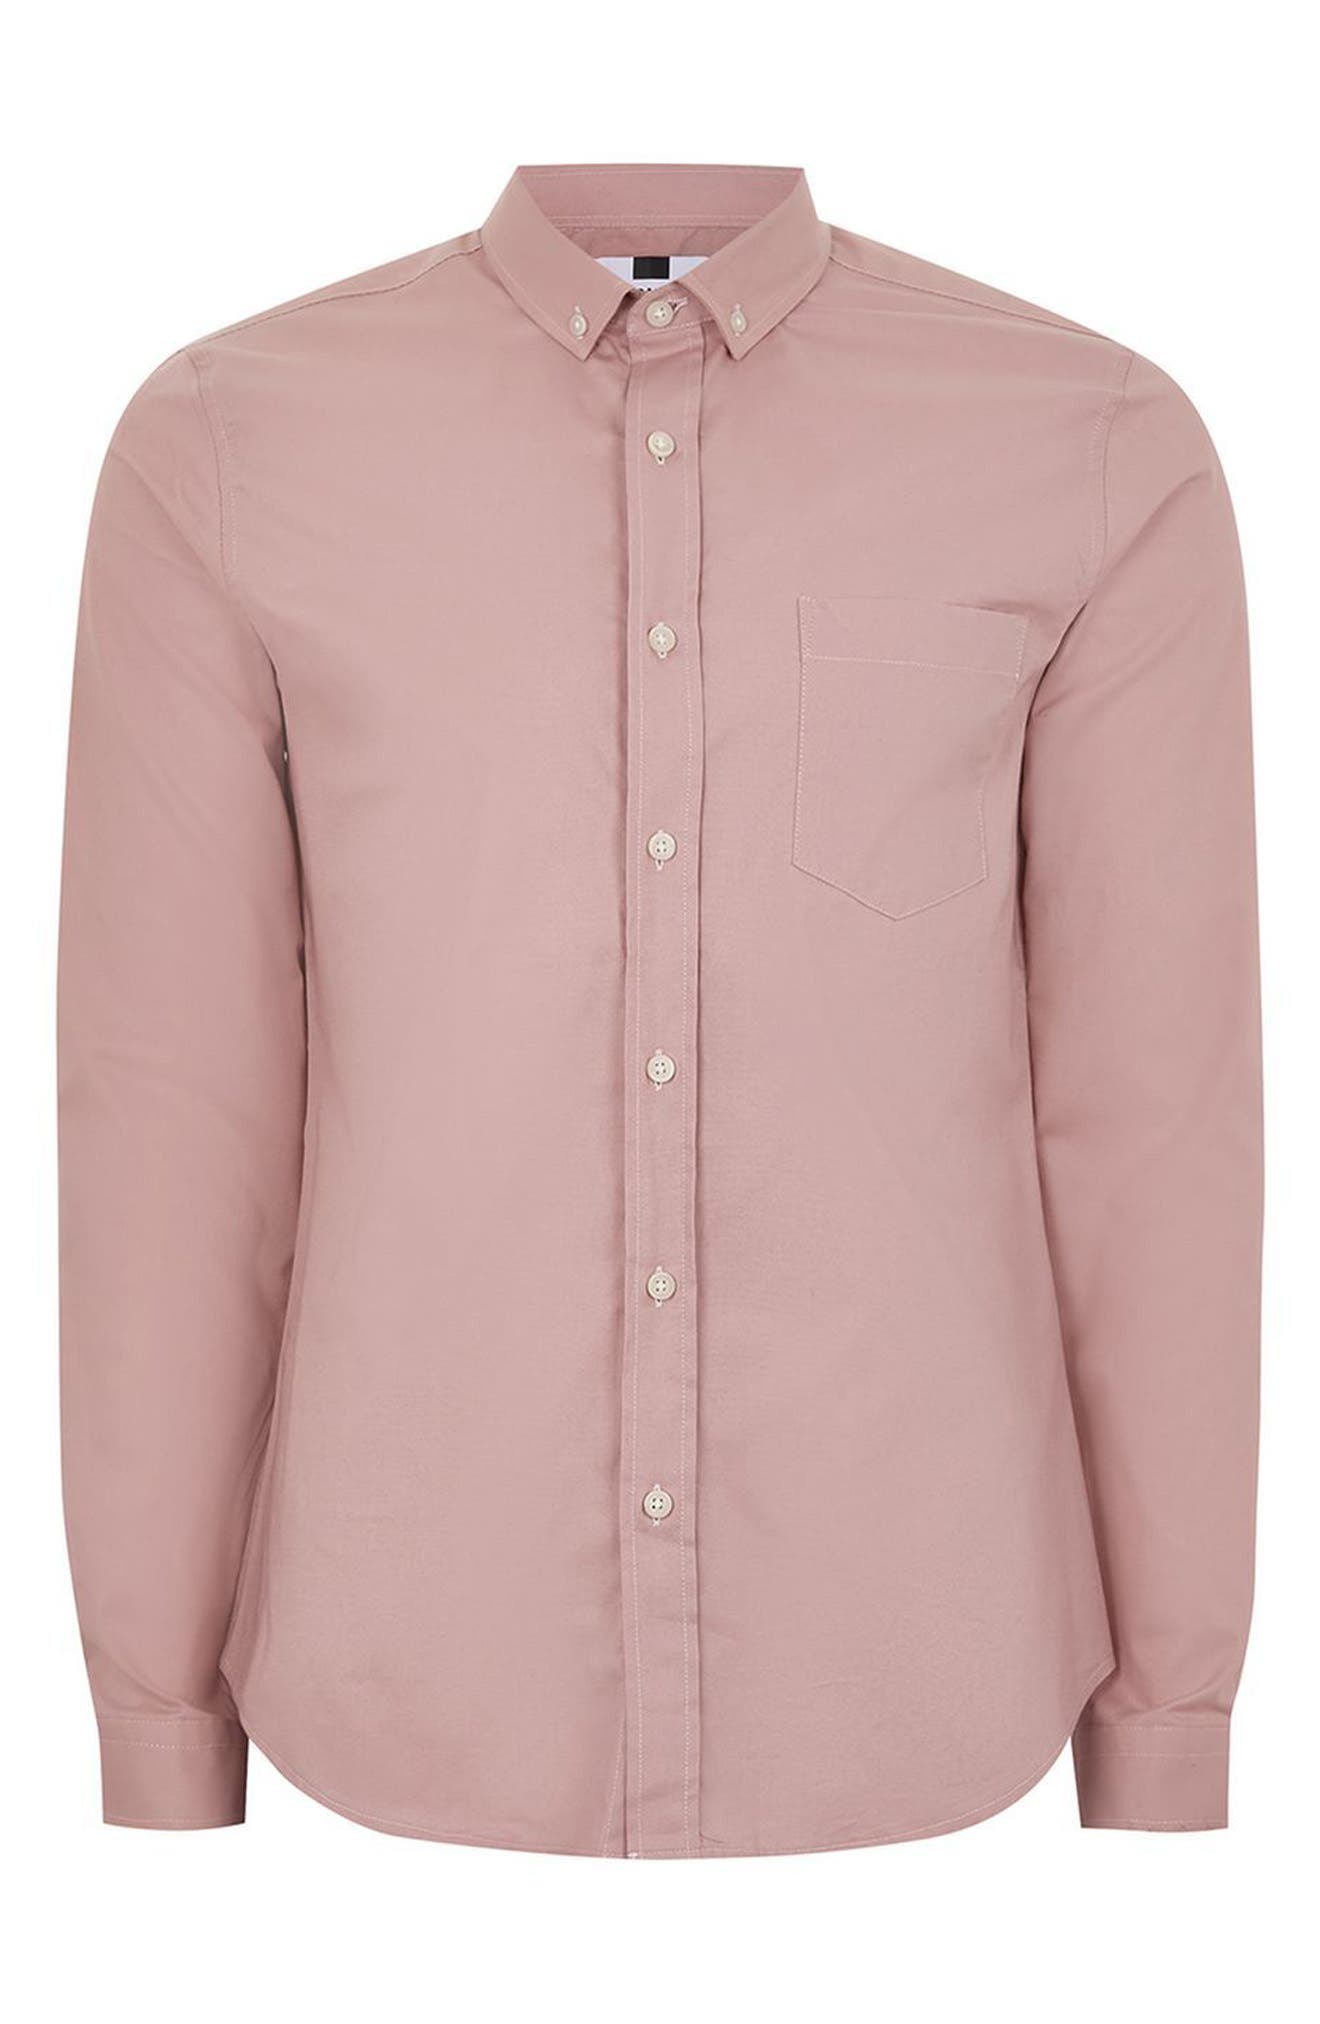 Muscle Fit Oxford Shirt,                             Alternate thumbnail 4, color,                             Pink